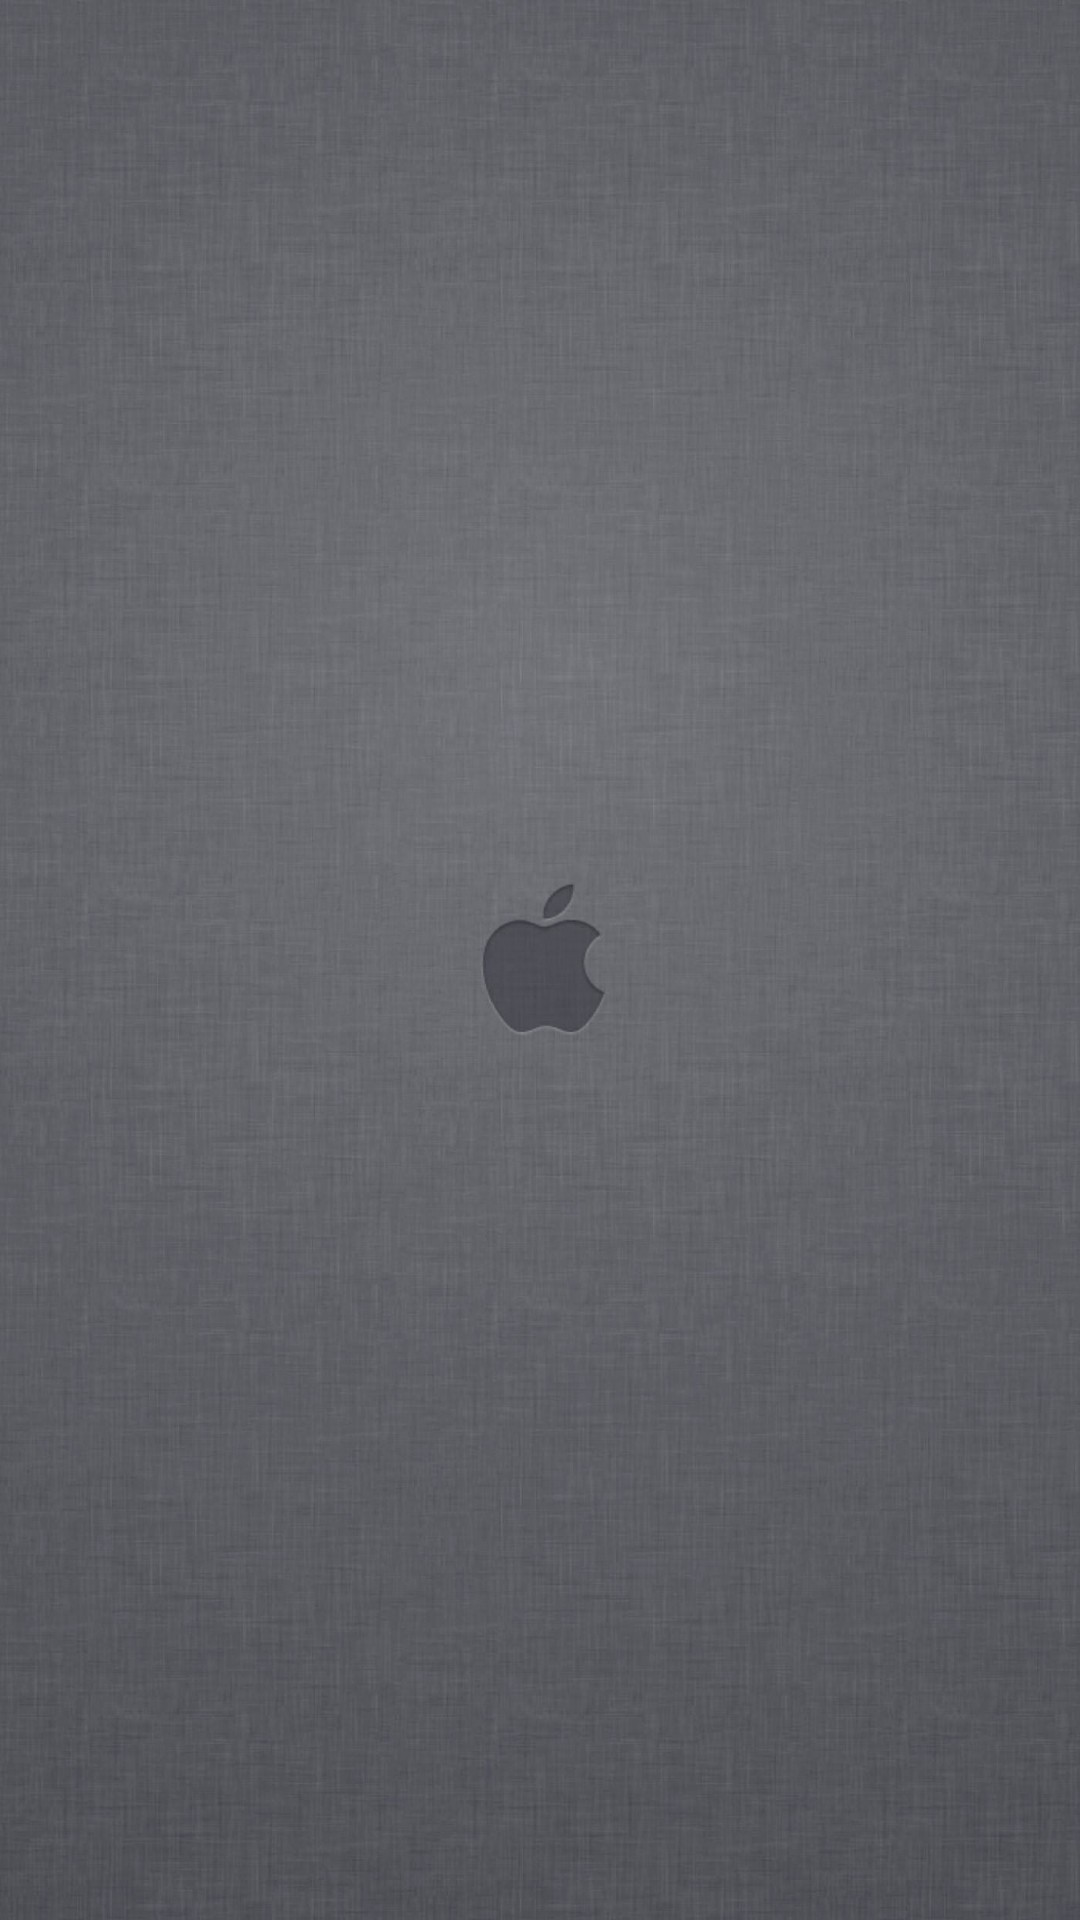 Apple Logo Denim Texture Wallpaper for SONY Xperia Z1